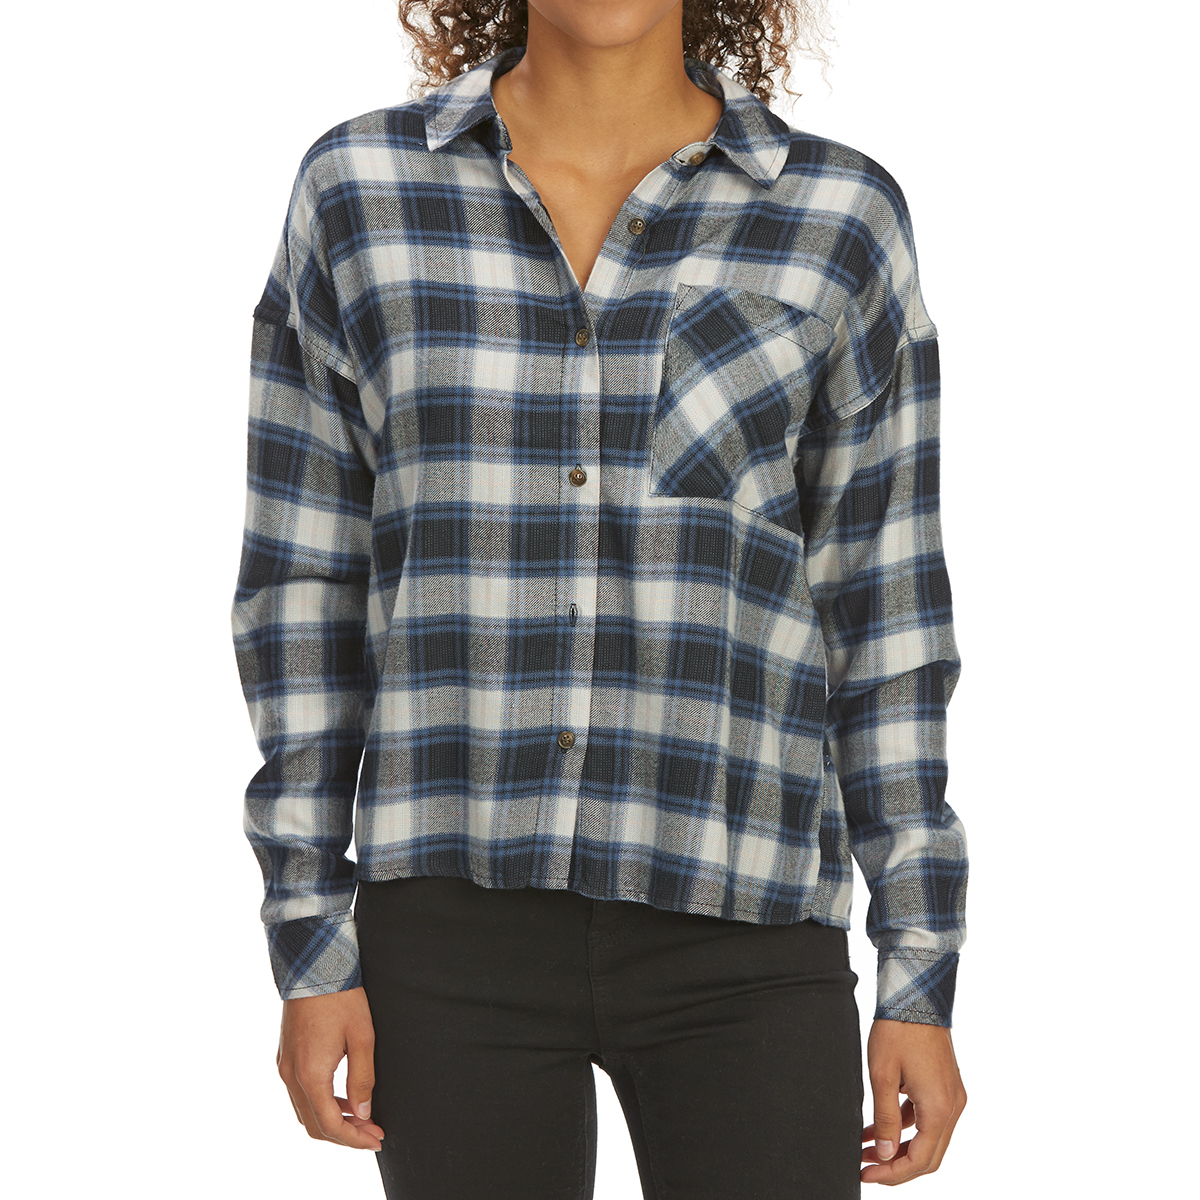 Pink Rose Juniors' Brushed Plaid Long-Sleeve Flannel Shirt - Black, S